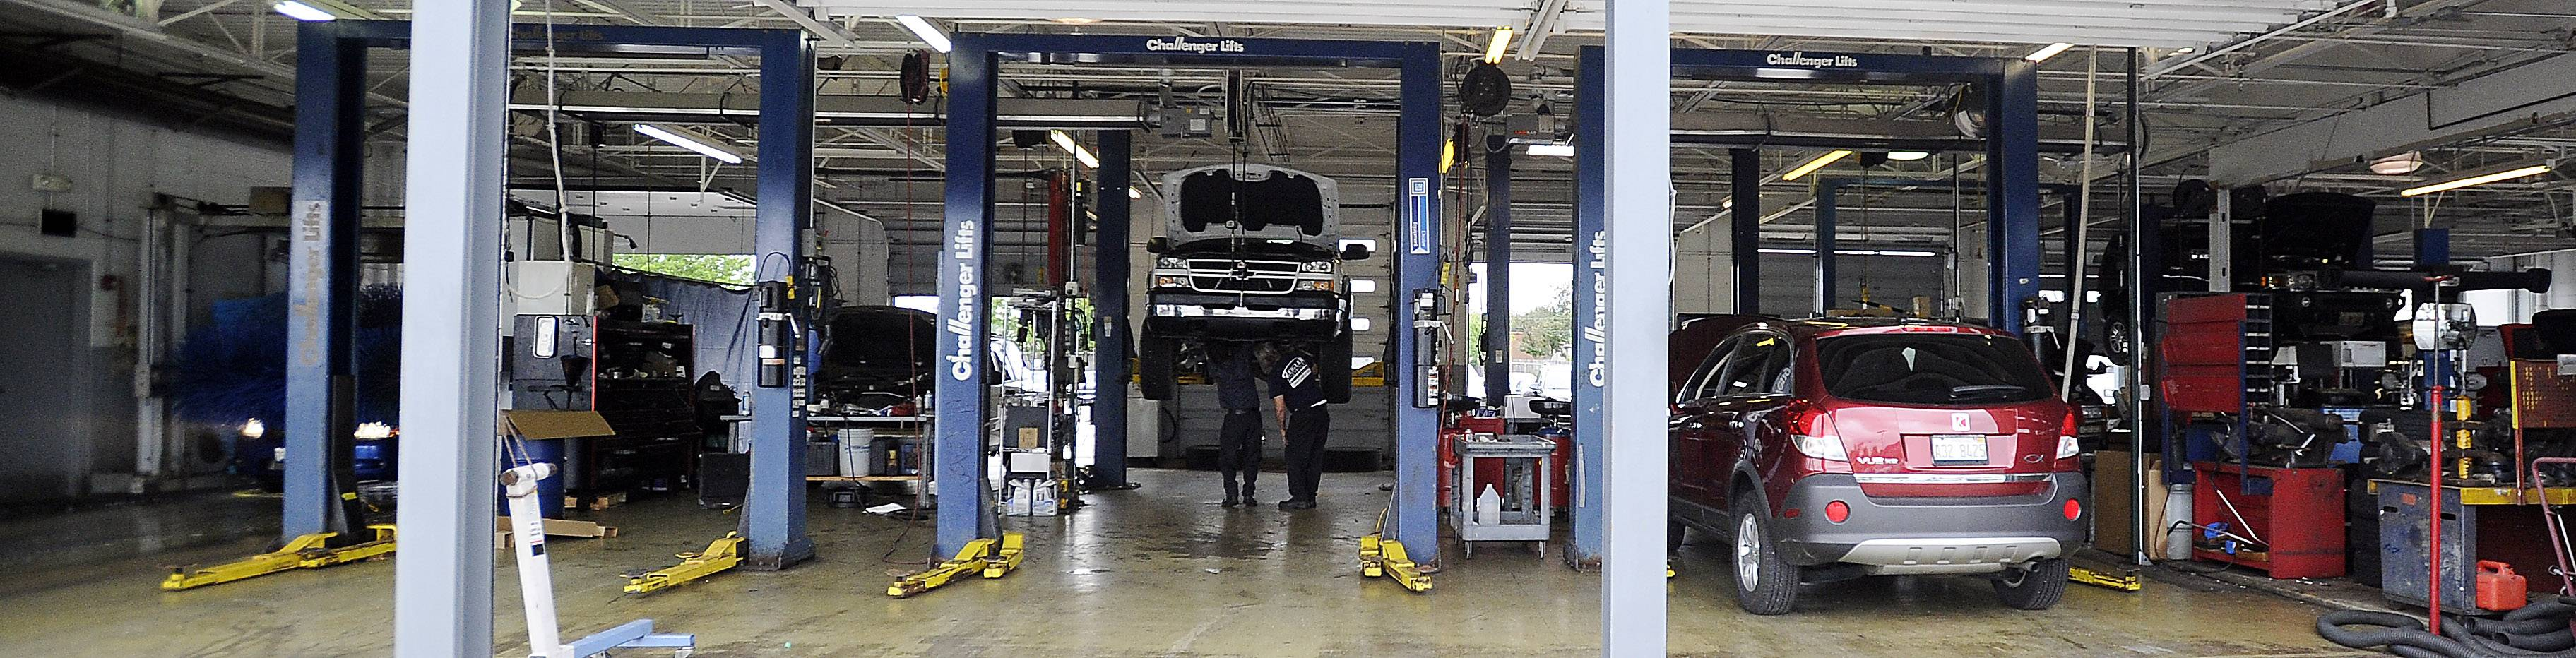 In addition to new and used car sales, Zeigler Chevrolet performs repairs.